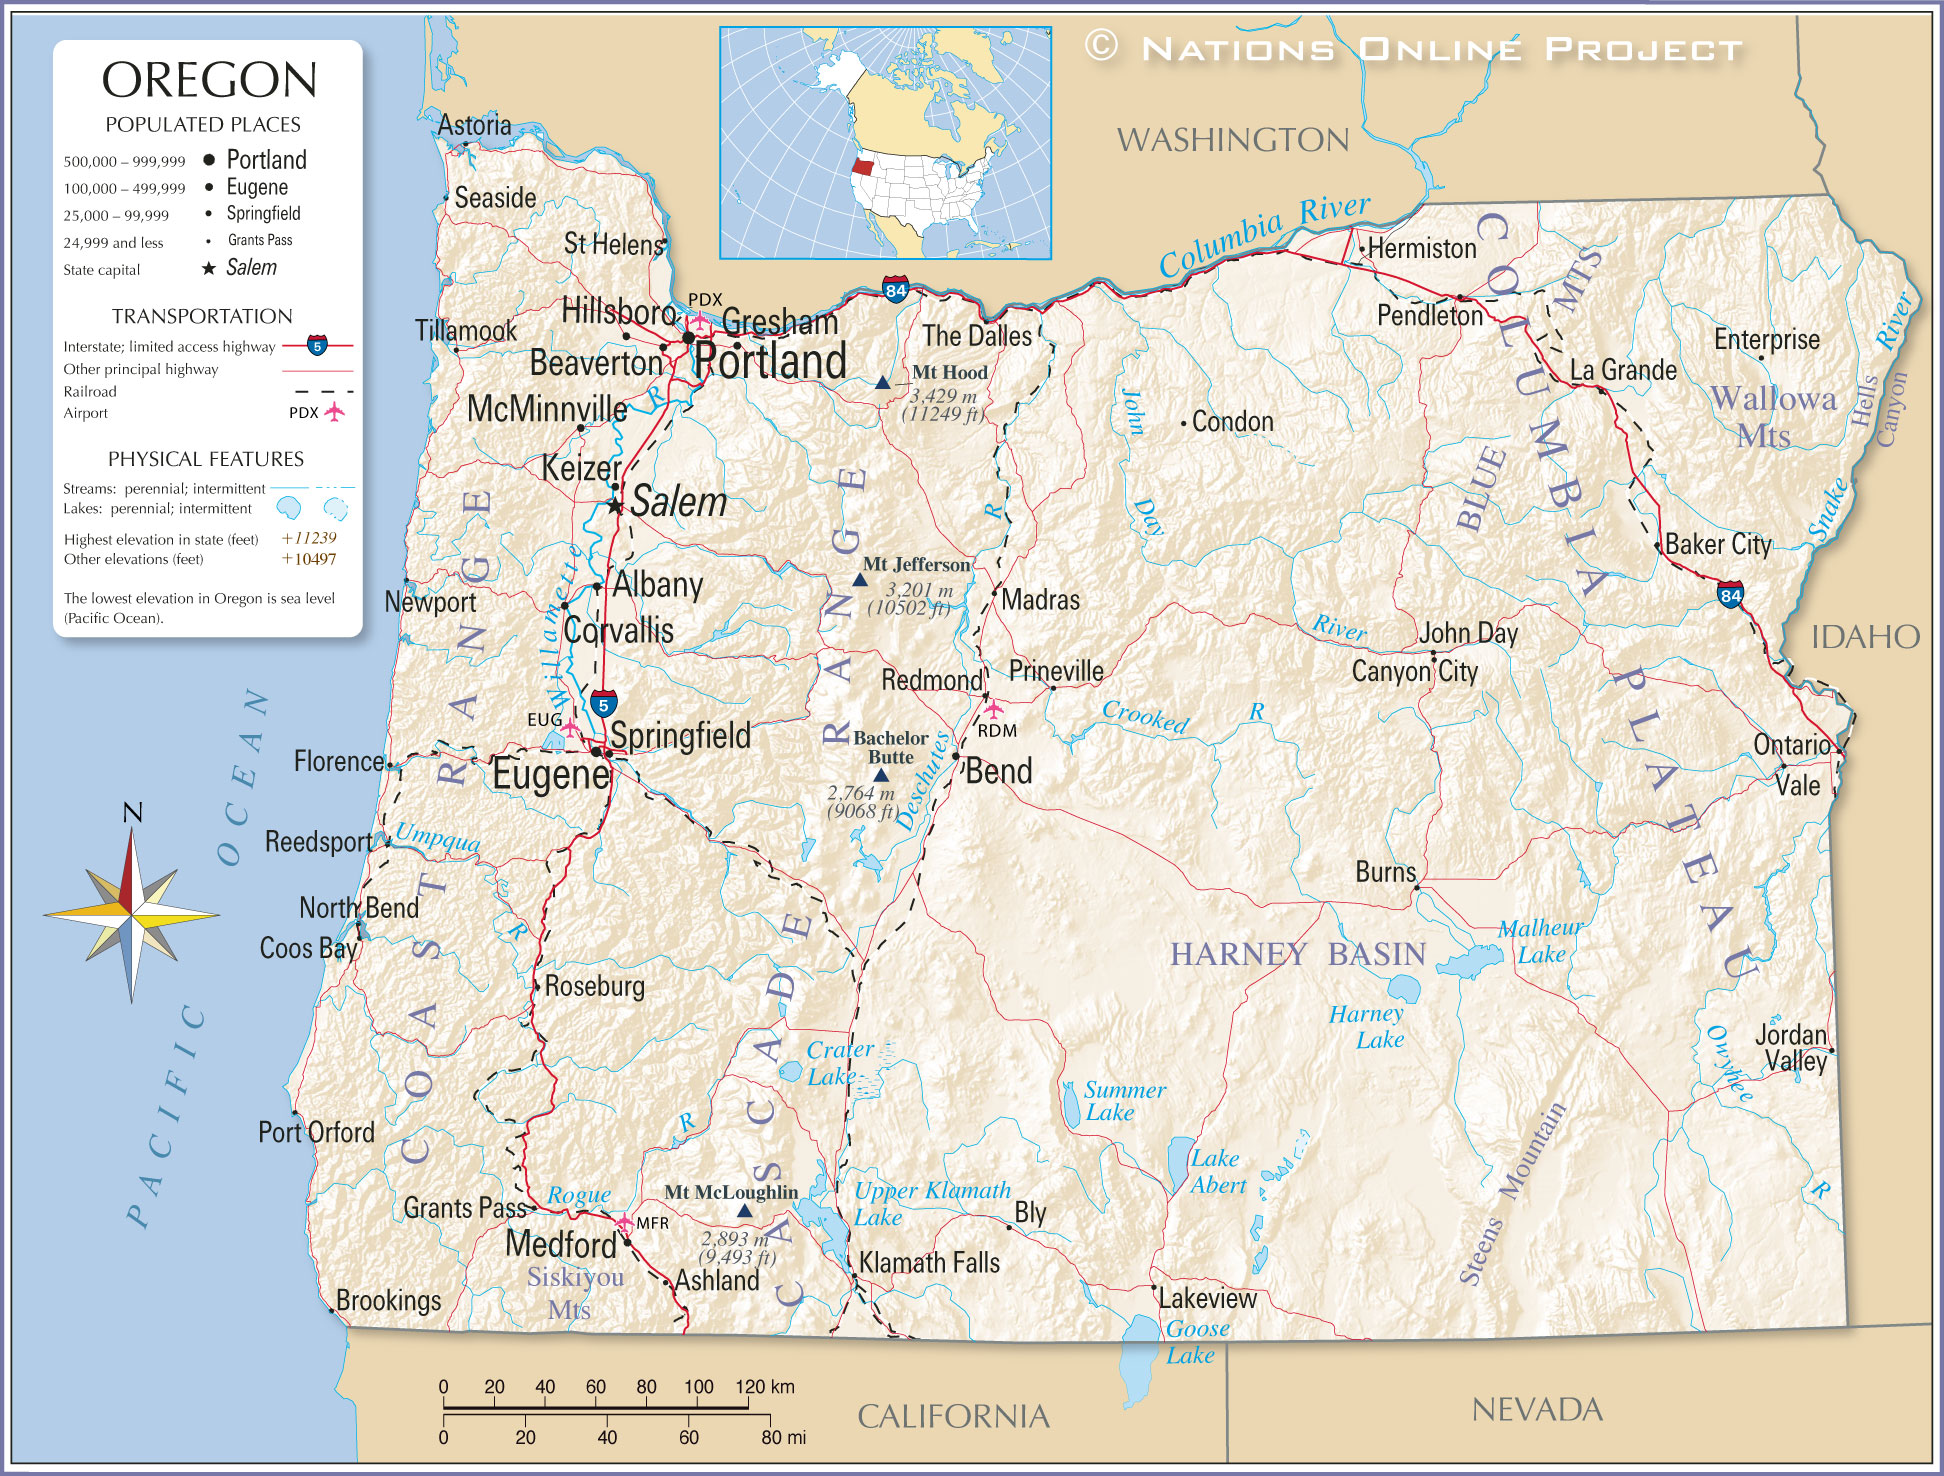 Map of the State of Oregon, USA - Nations Online Project